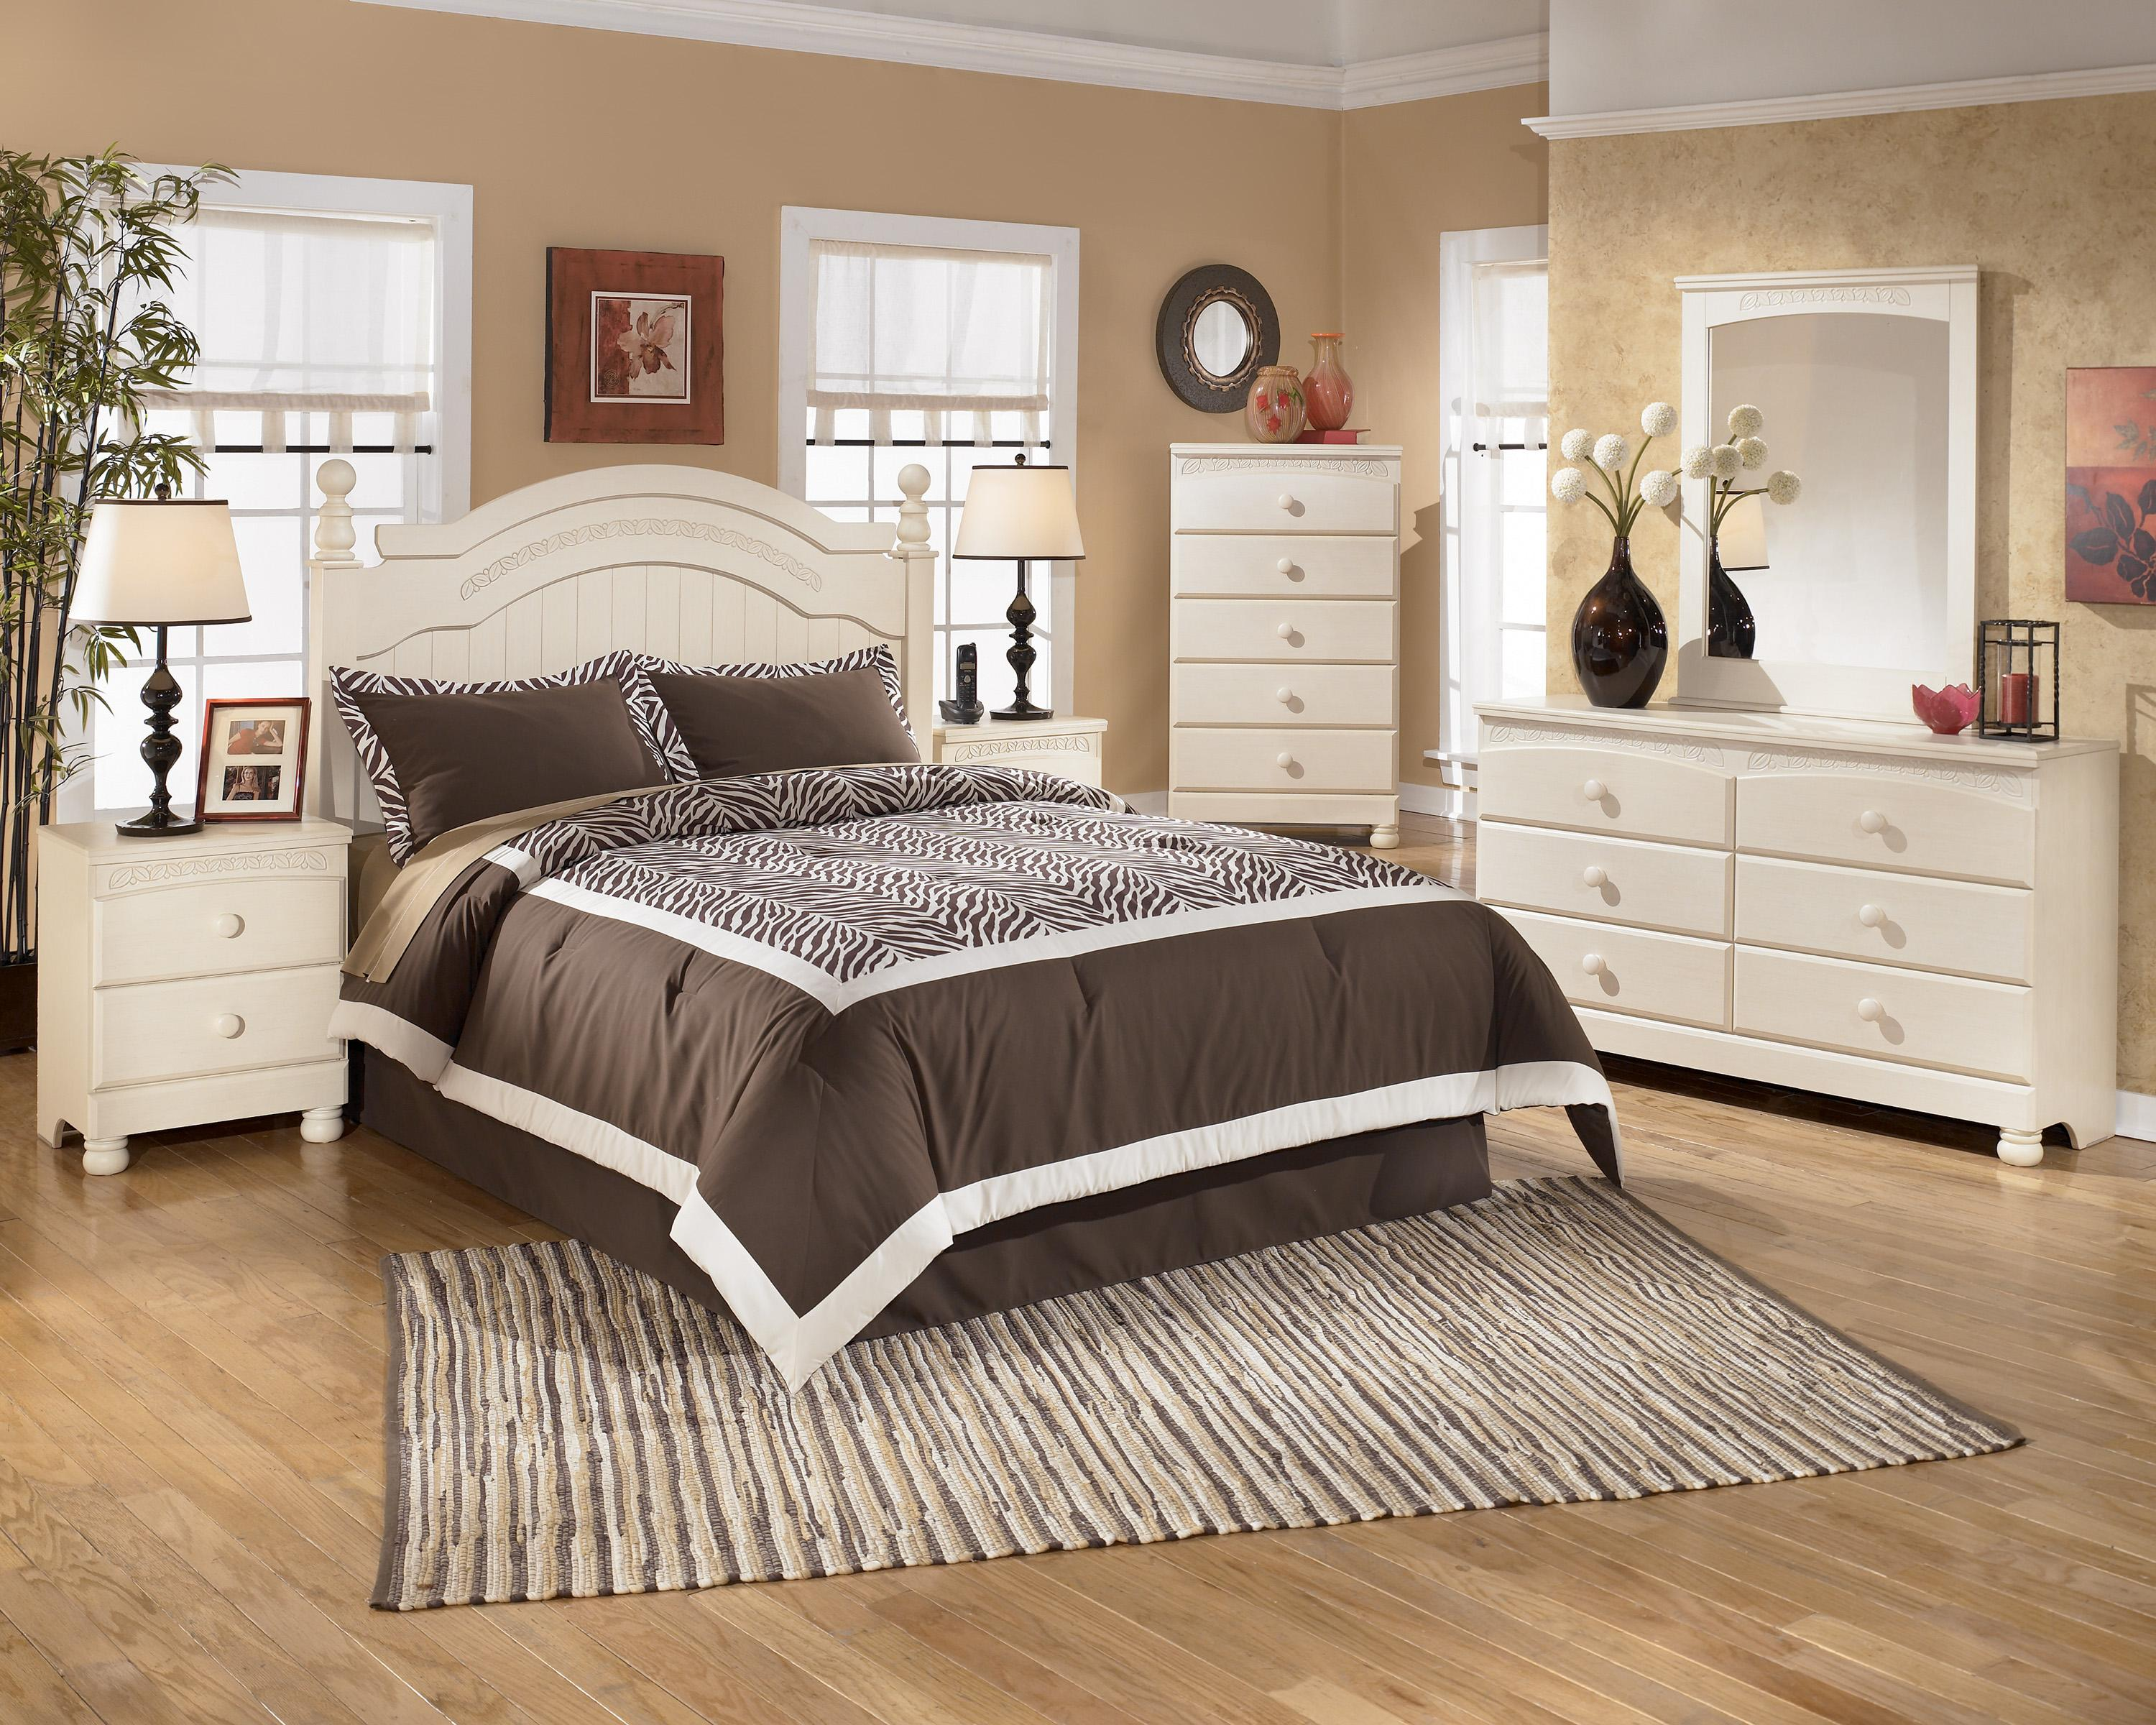 Cottage retreat cr by signature design by ashley del sol furniture signature design by for Cottage retreat bedroom set